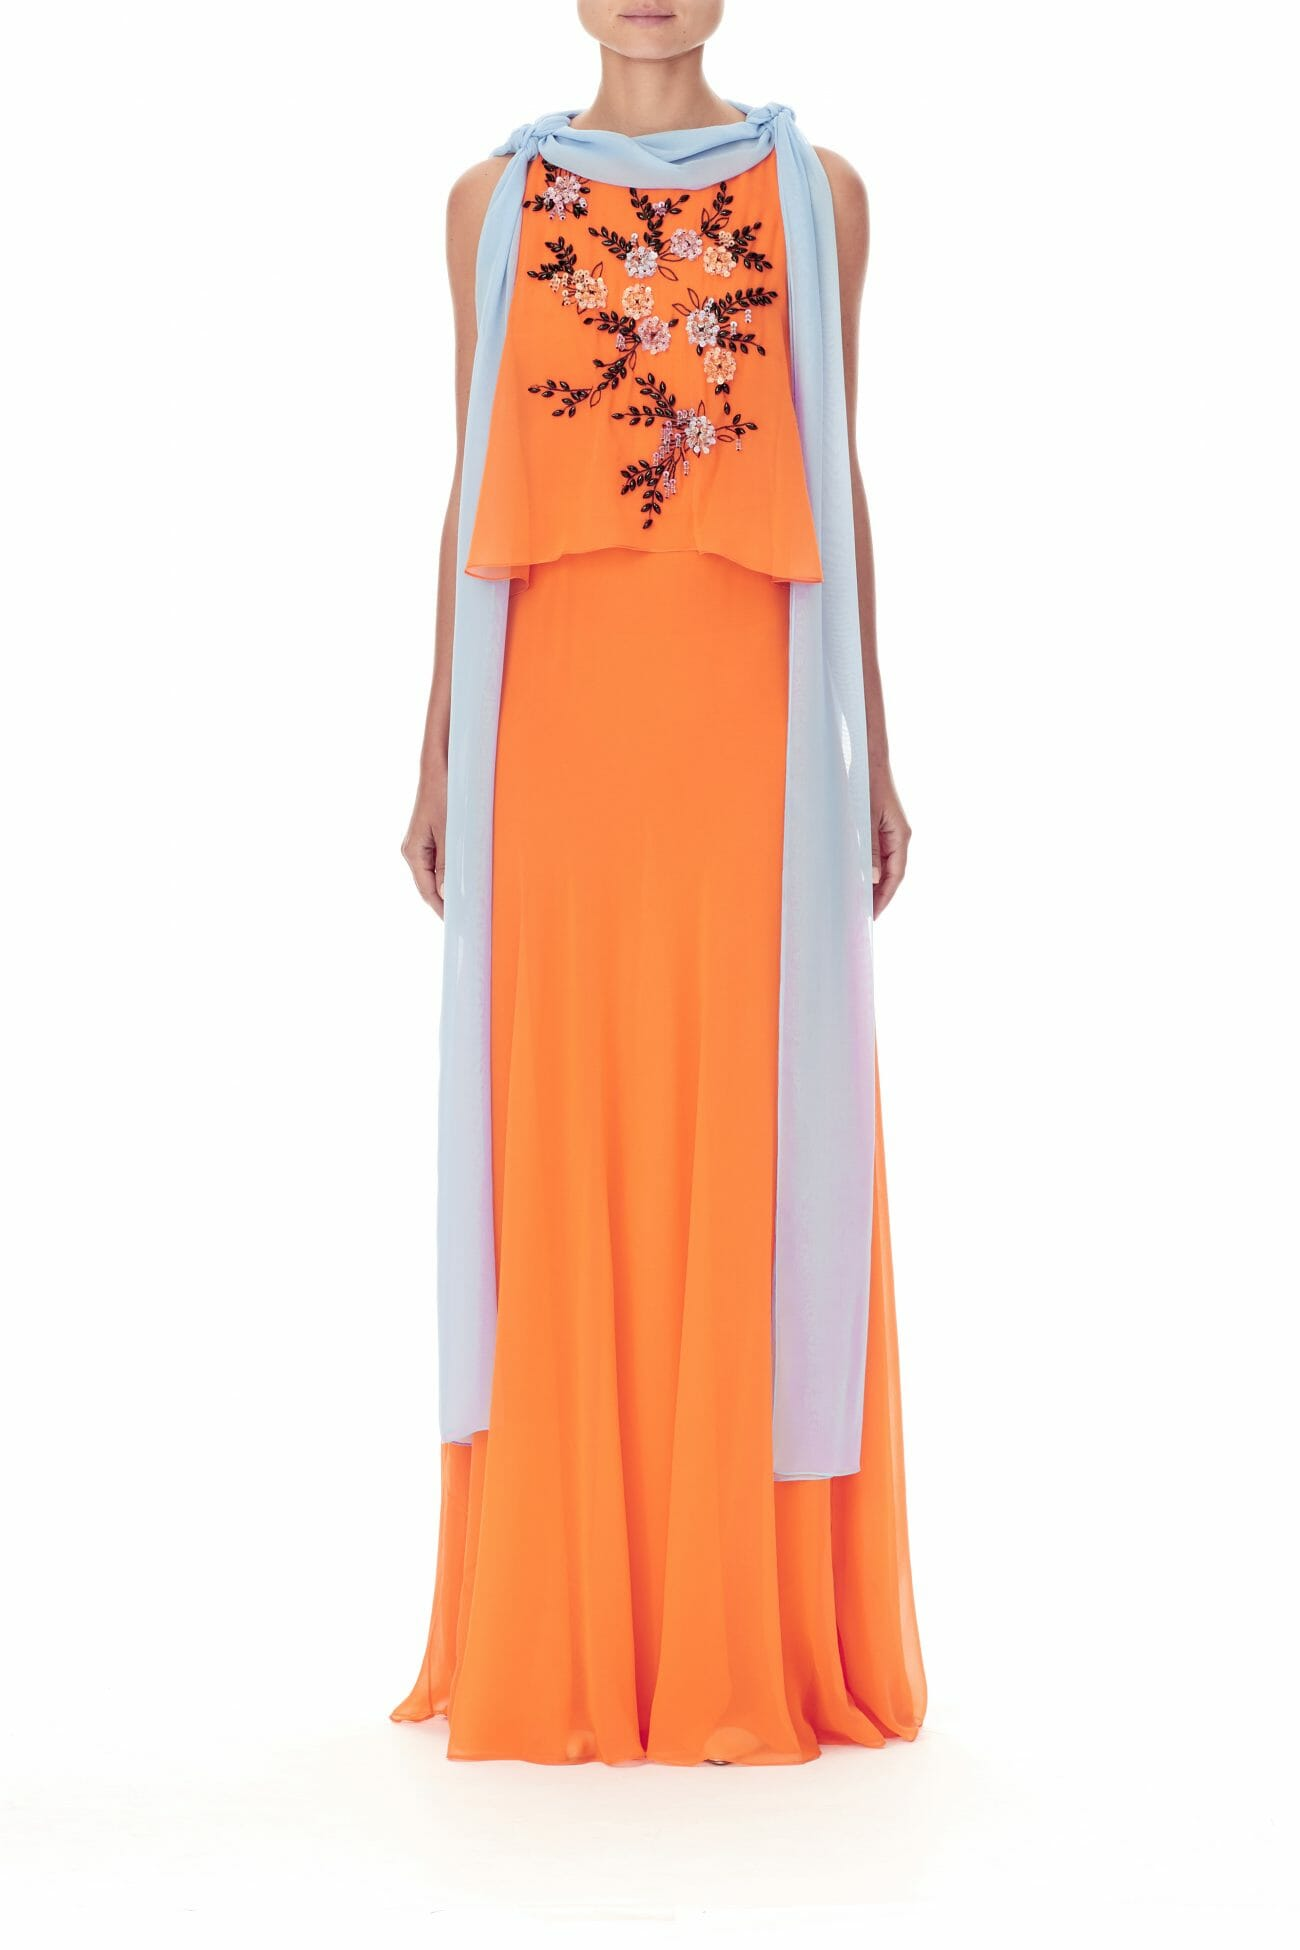 Carolina-Herrera-New-York-Resort-2019-look-25